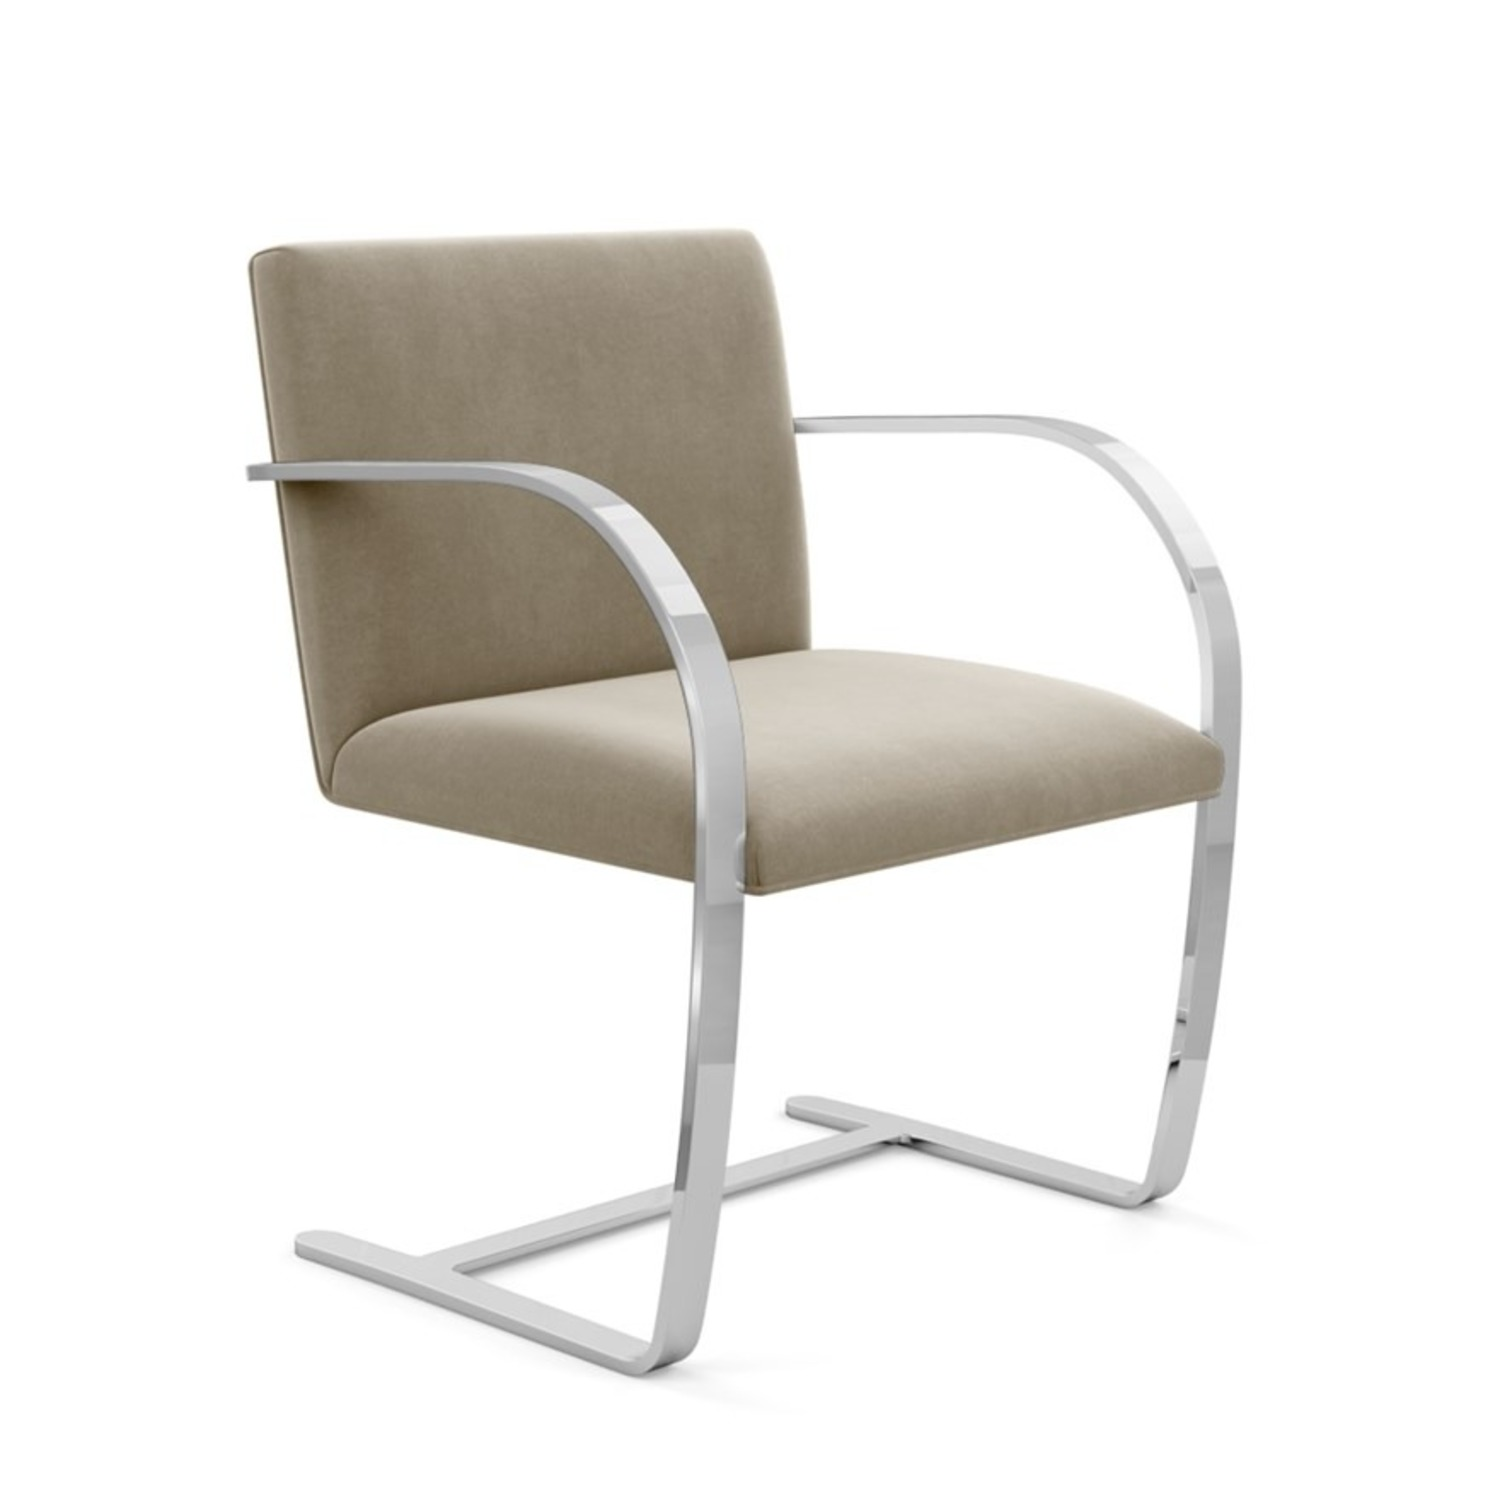 Knoll Mies Vander Rohe-Brno Chairs - image-1